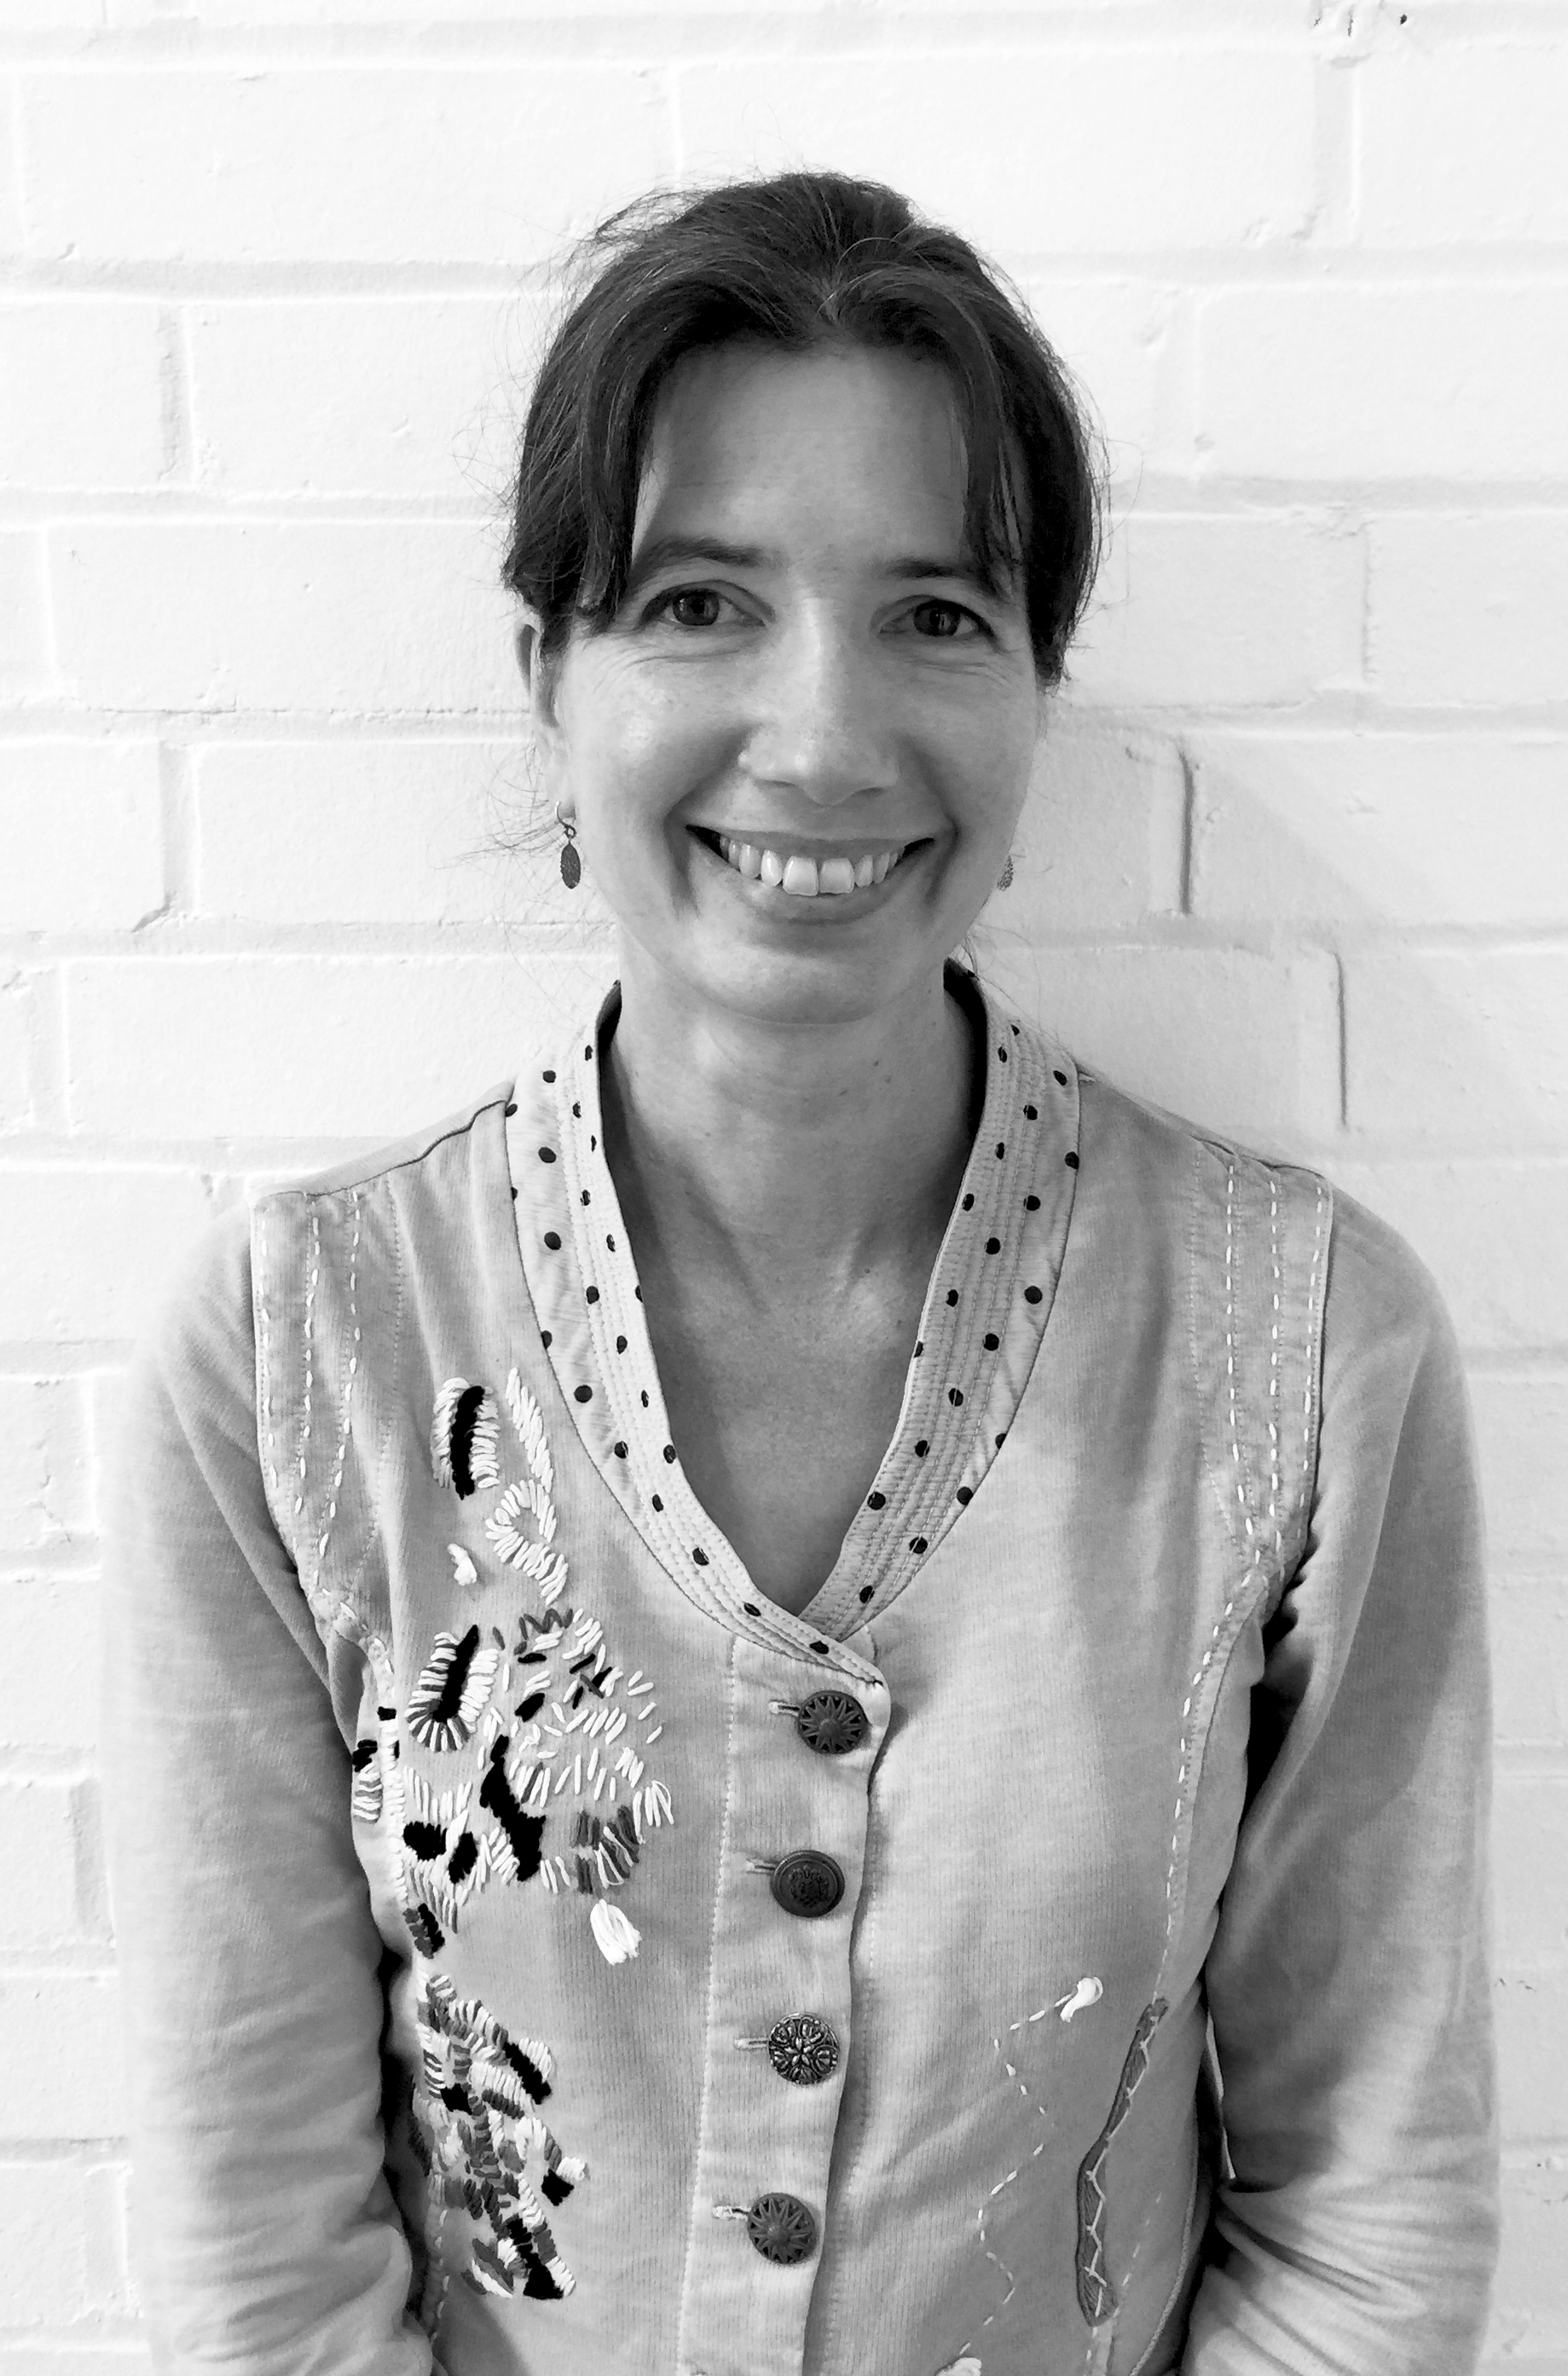 Helen fox, Practice Manager   Helen studied Natural Sciences (Chemistry) at Cambridge and then Theology at Oxford, so the obvious next step was Interior Design! Her responsibilities include project management, keeping the office running, and assisting with the company accounts.  Helen previously worked at Trinity College Computer Office on the College website. She has five children which has helped develop her multi-tasking skills.   Email Helen